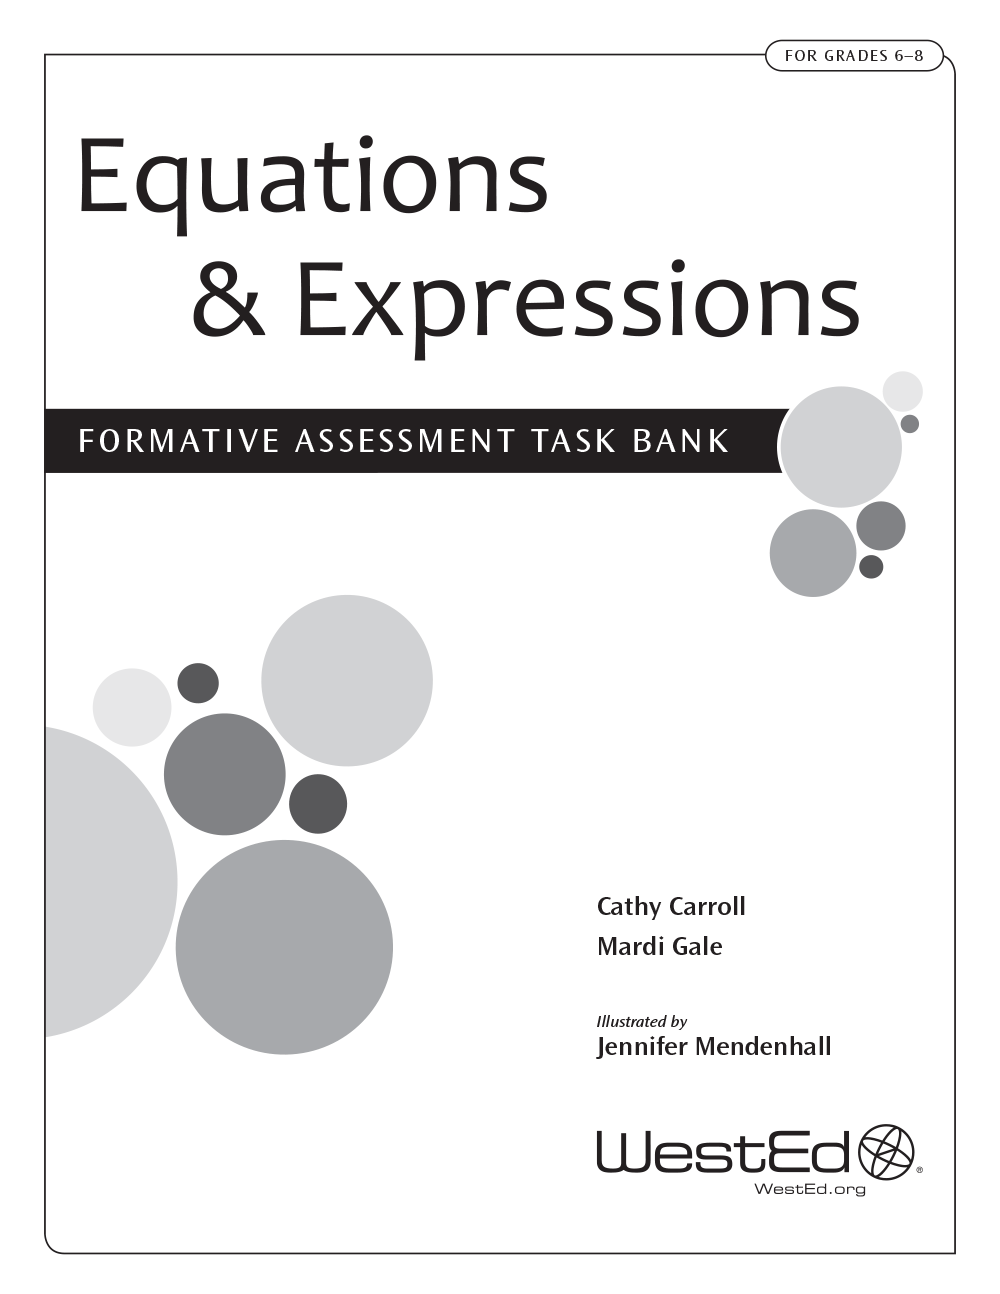 Cathy carroll wested cover image for equations expressions formative assessment task bank for grades fandeluxe Gallery